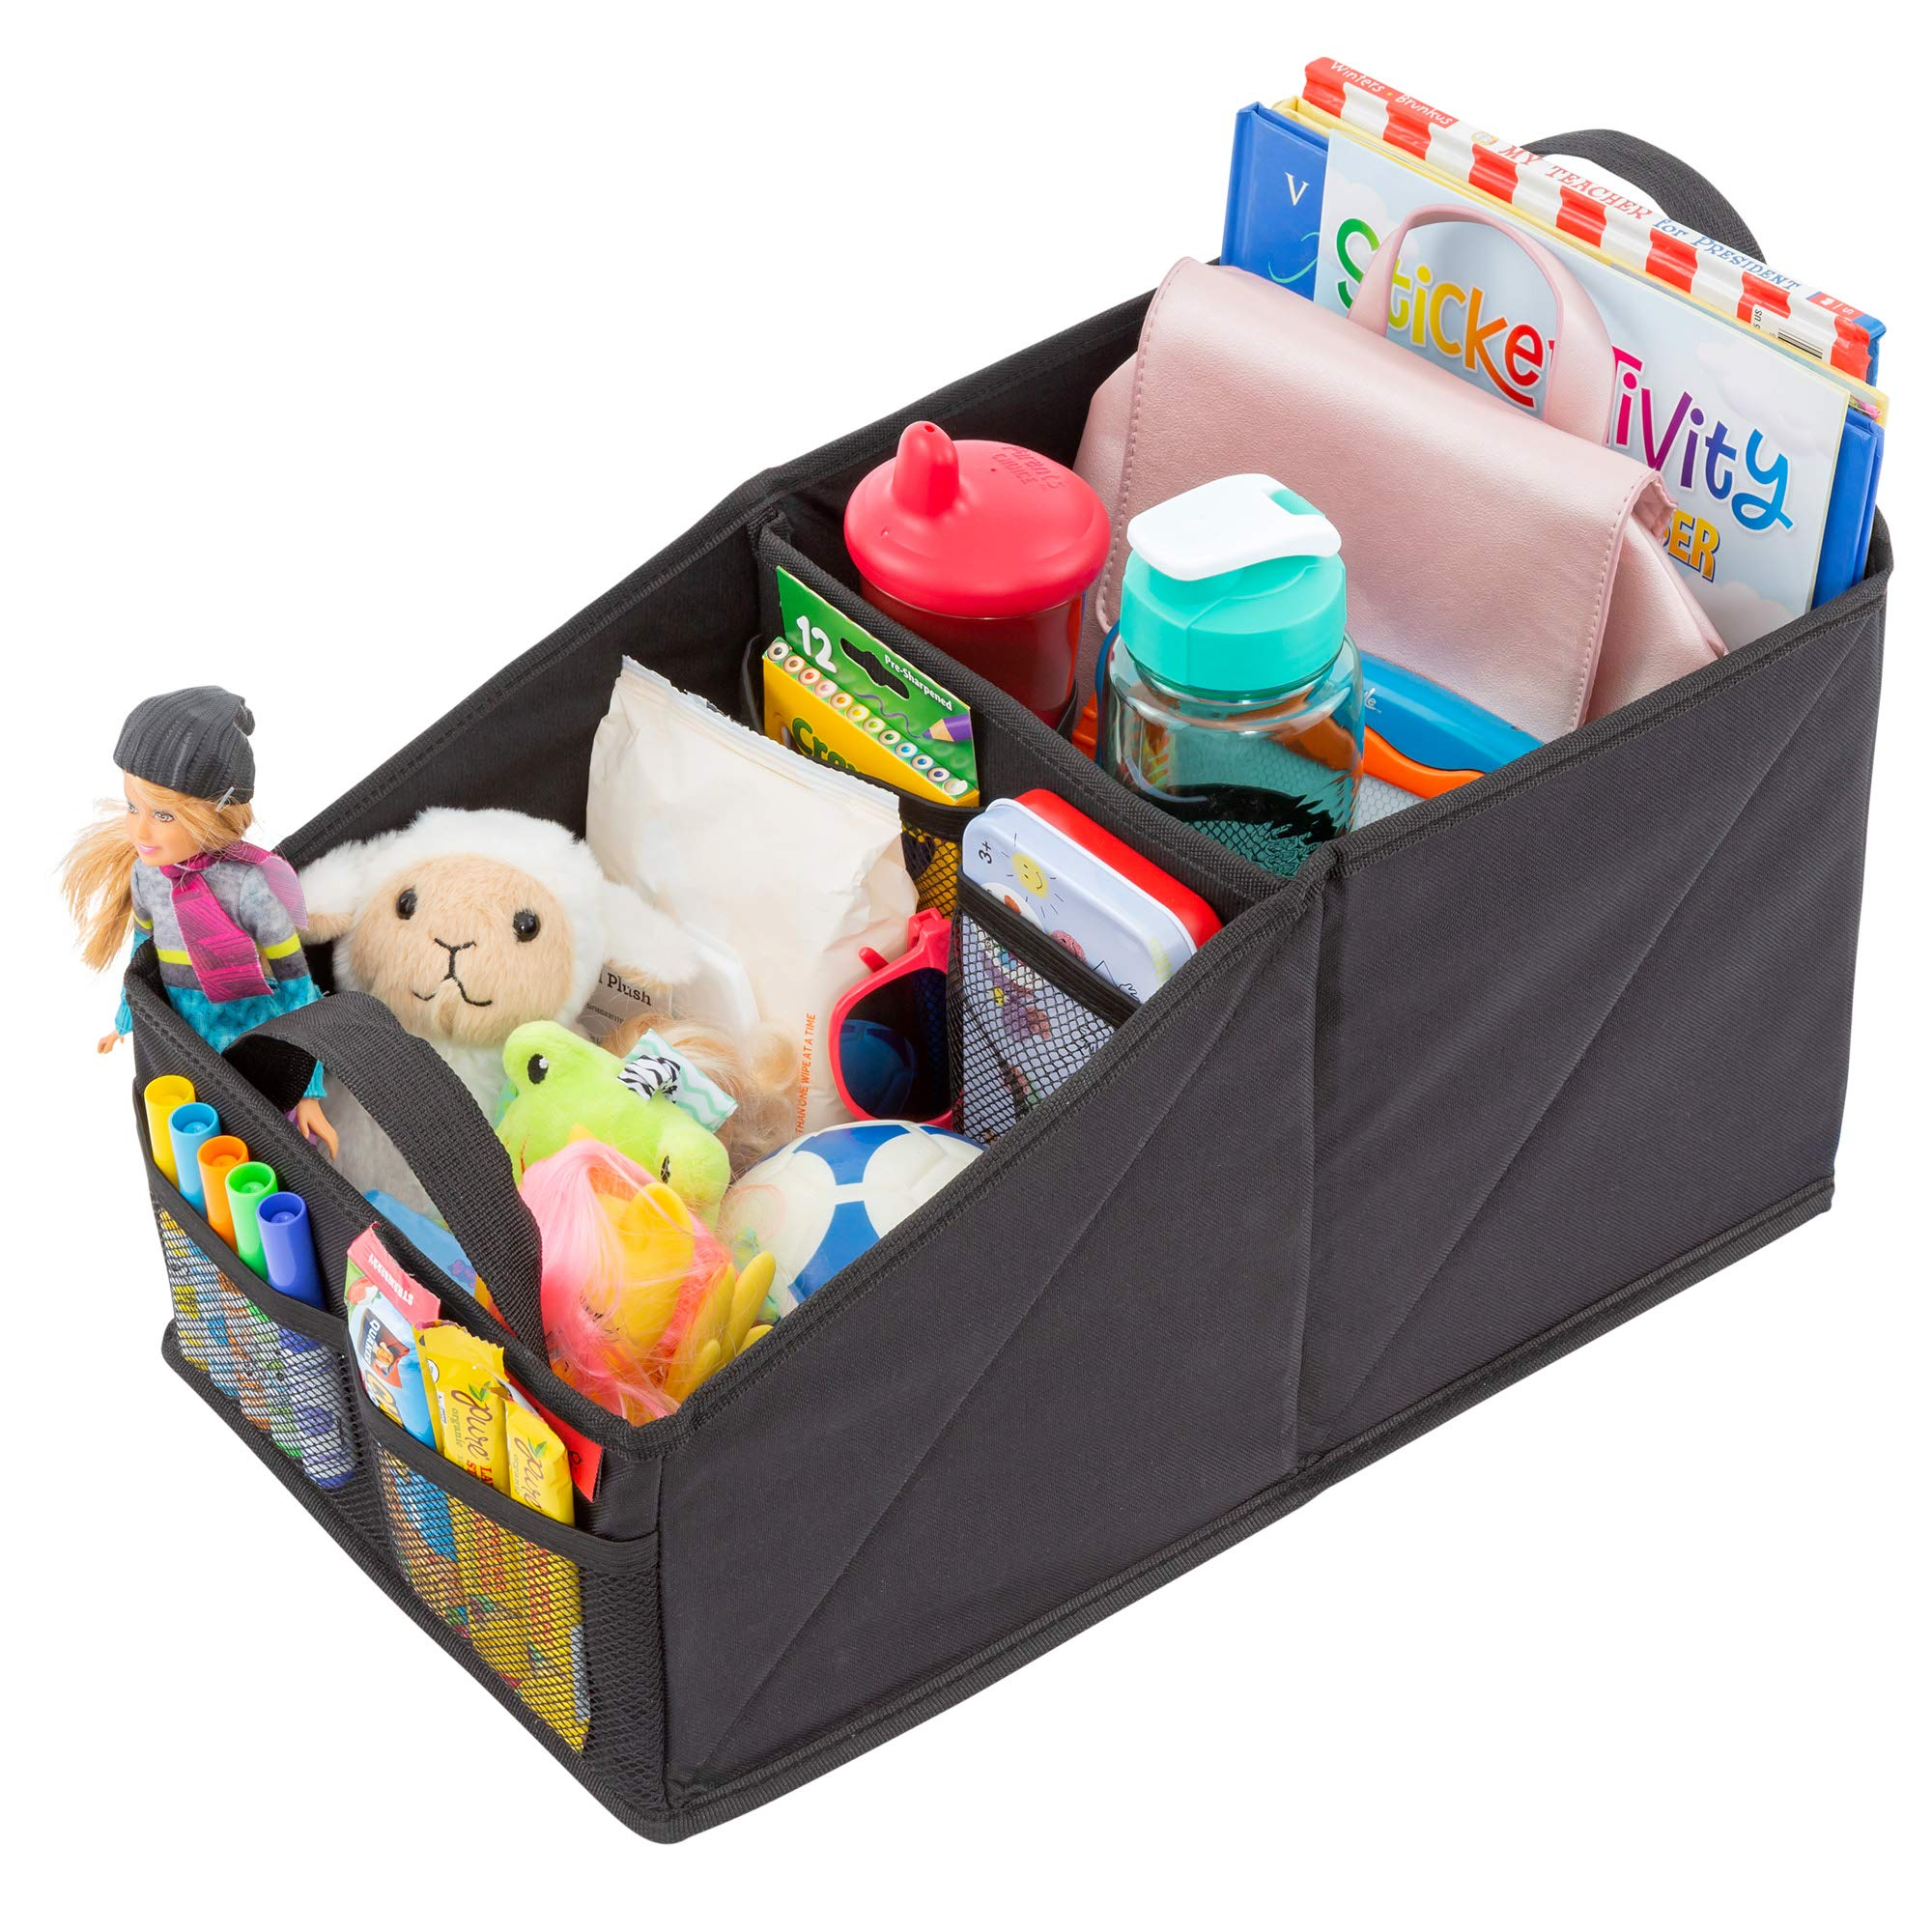 Premium Front & Backseat Car Organizer | Heavy Duty Back Stitching - 9 Clutter-Free Seat Storage Pockets | Easily Keep Seats & Floors Organized & Clean w/ Supply and Toy Organizers for Kids & Adults by Lusso Gear